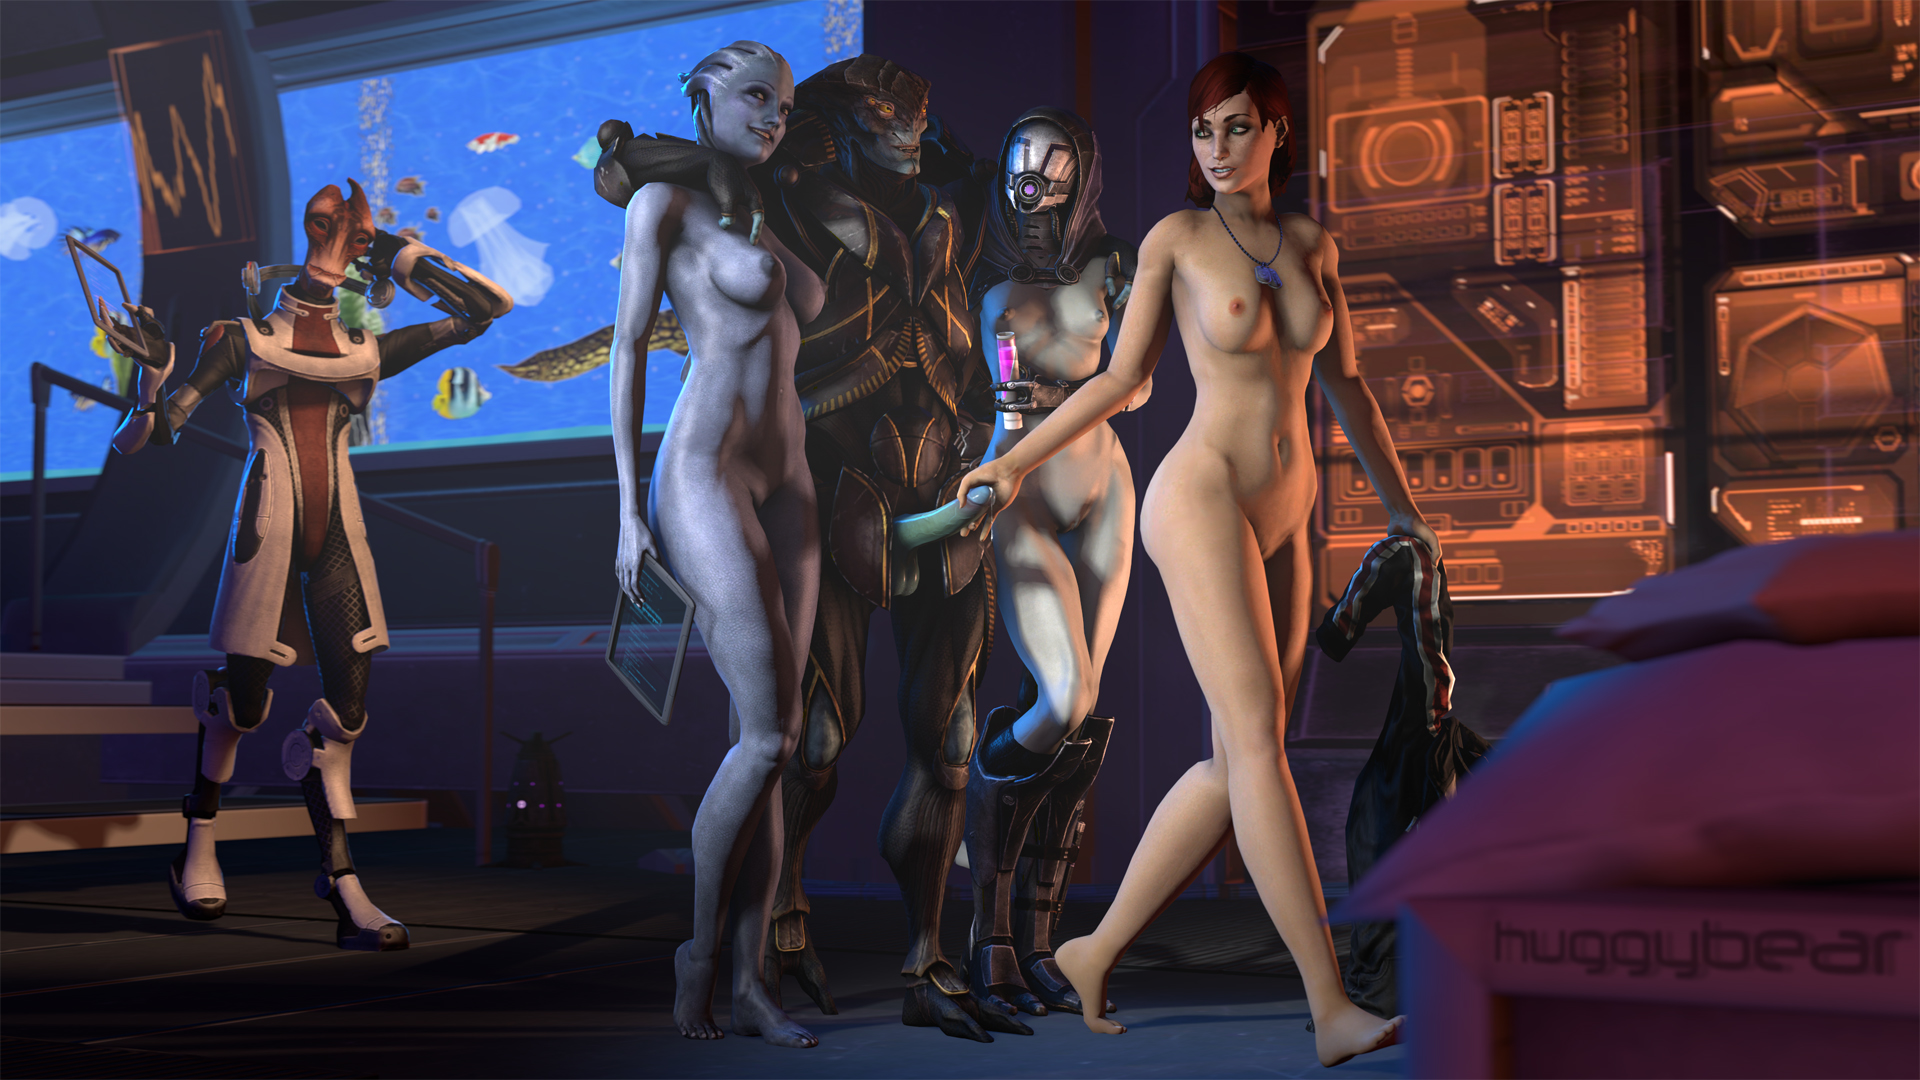 Free hentai mass effect games porn photo